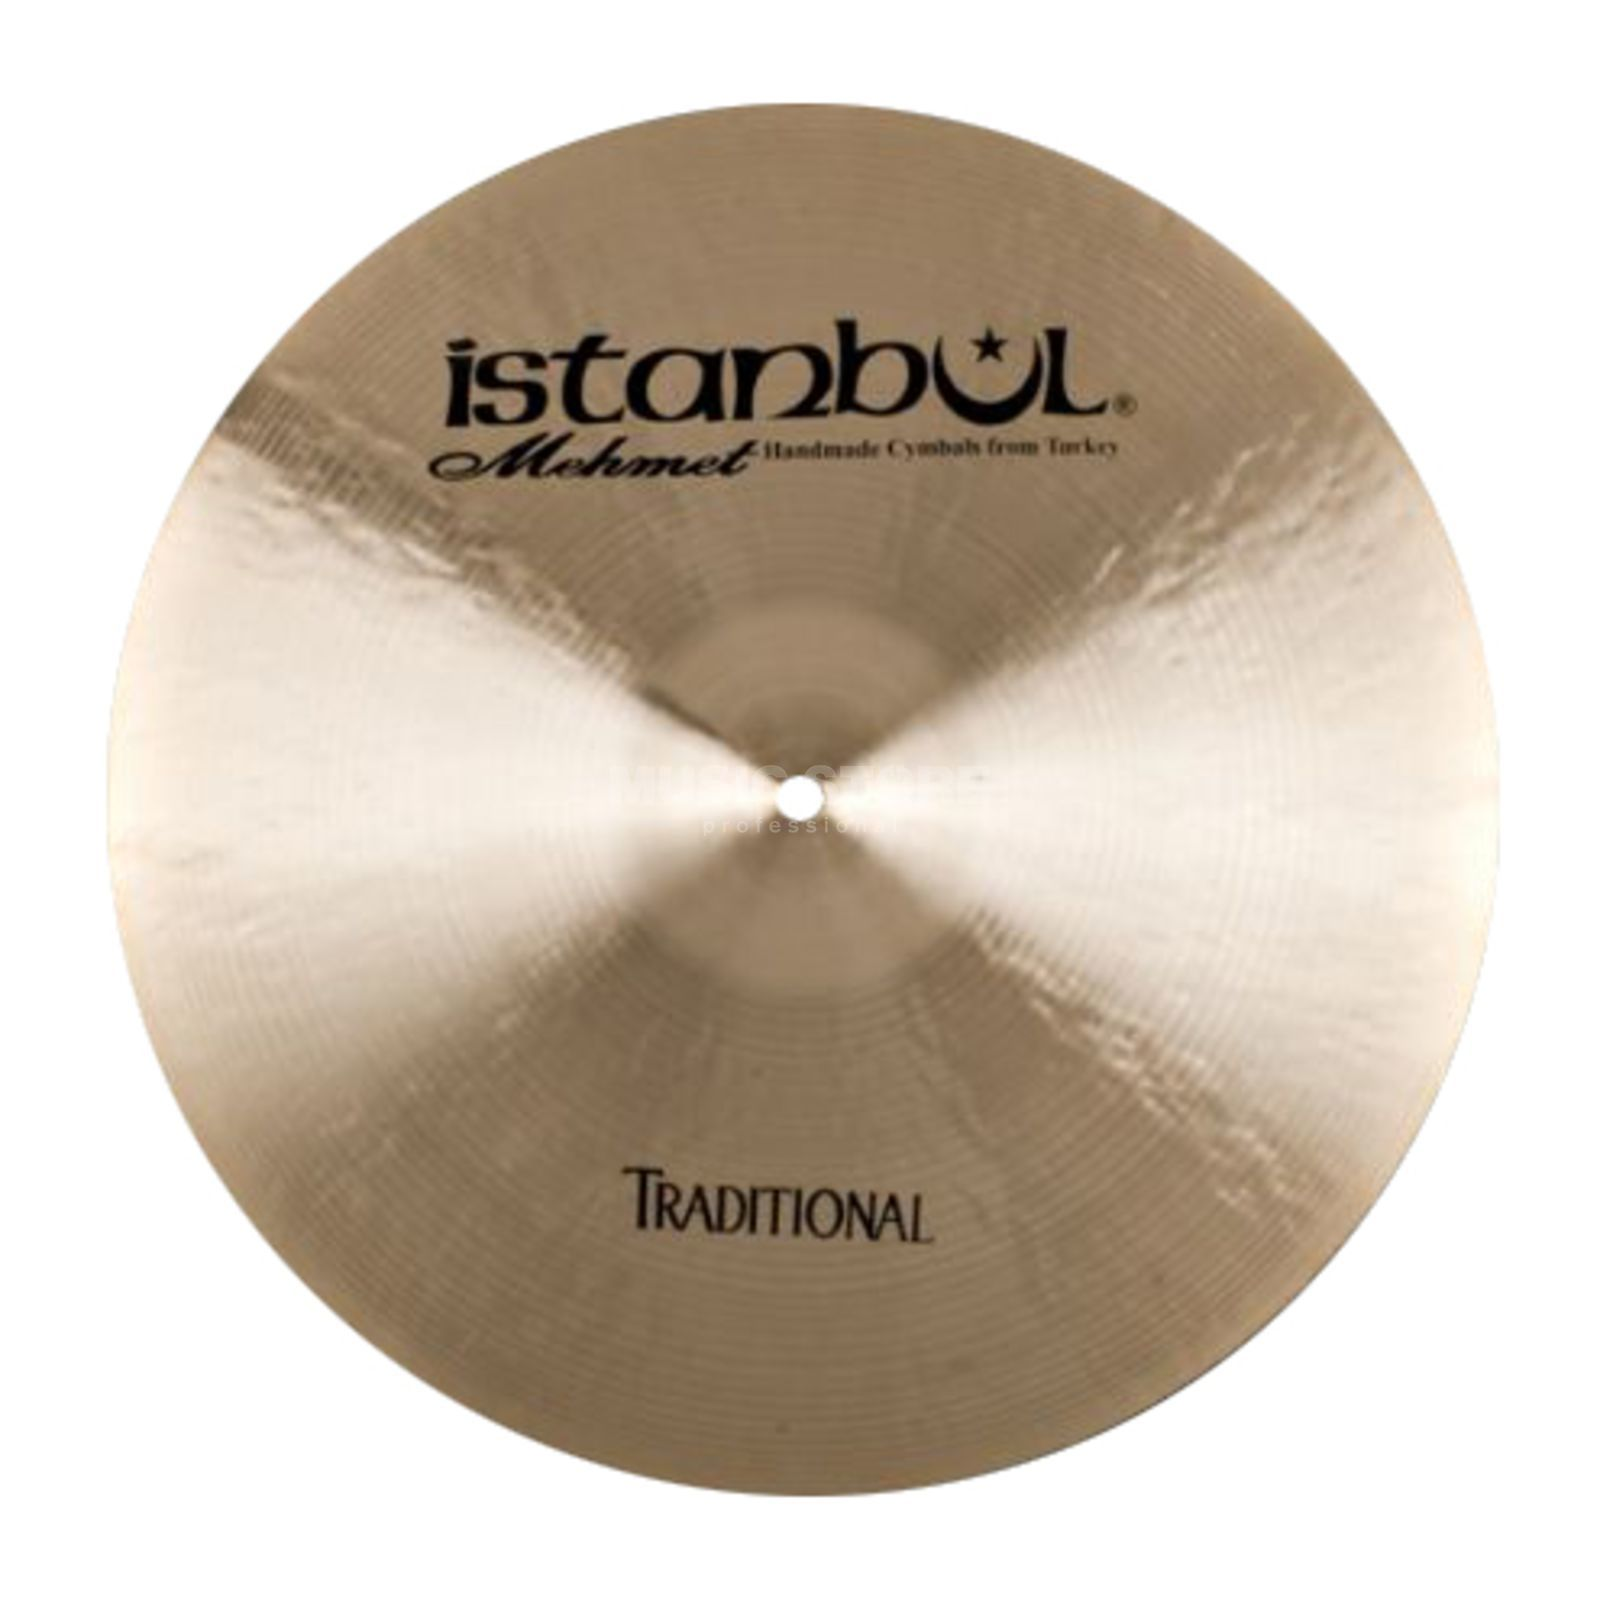 "Istanbul Traditional Dark Crash 20"", CD20 Produktbild"